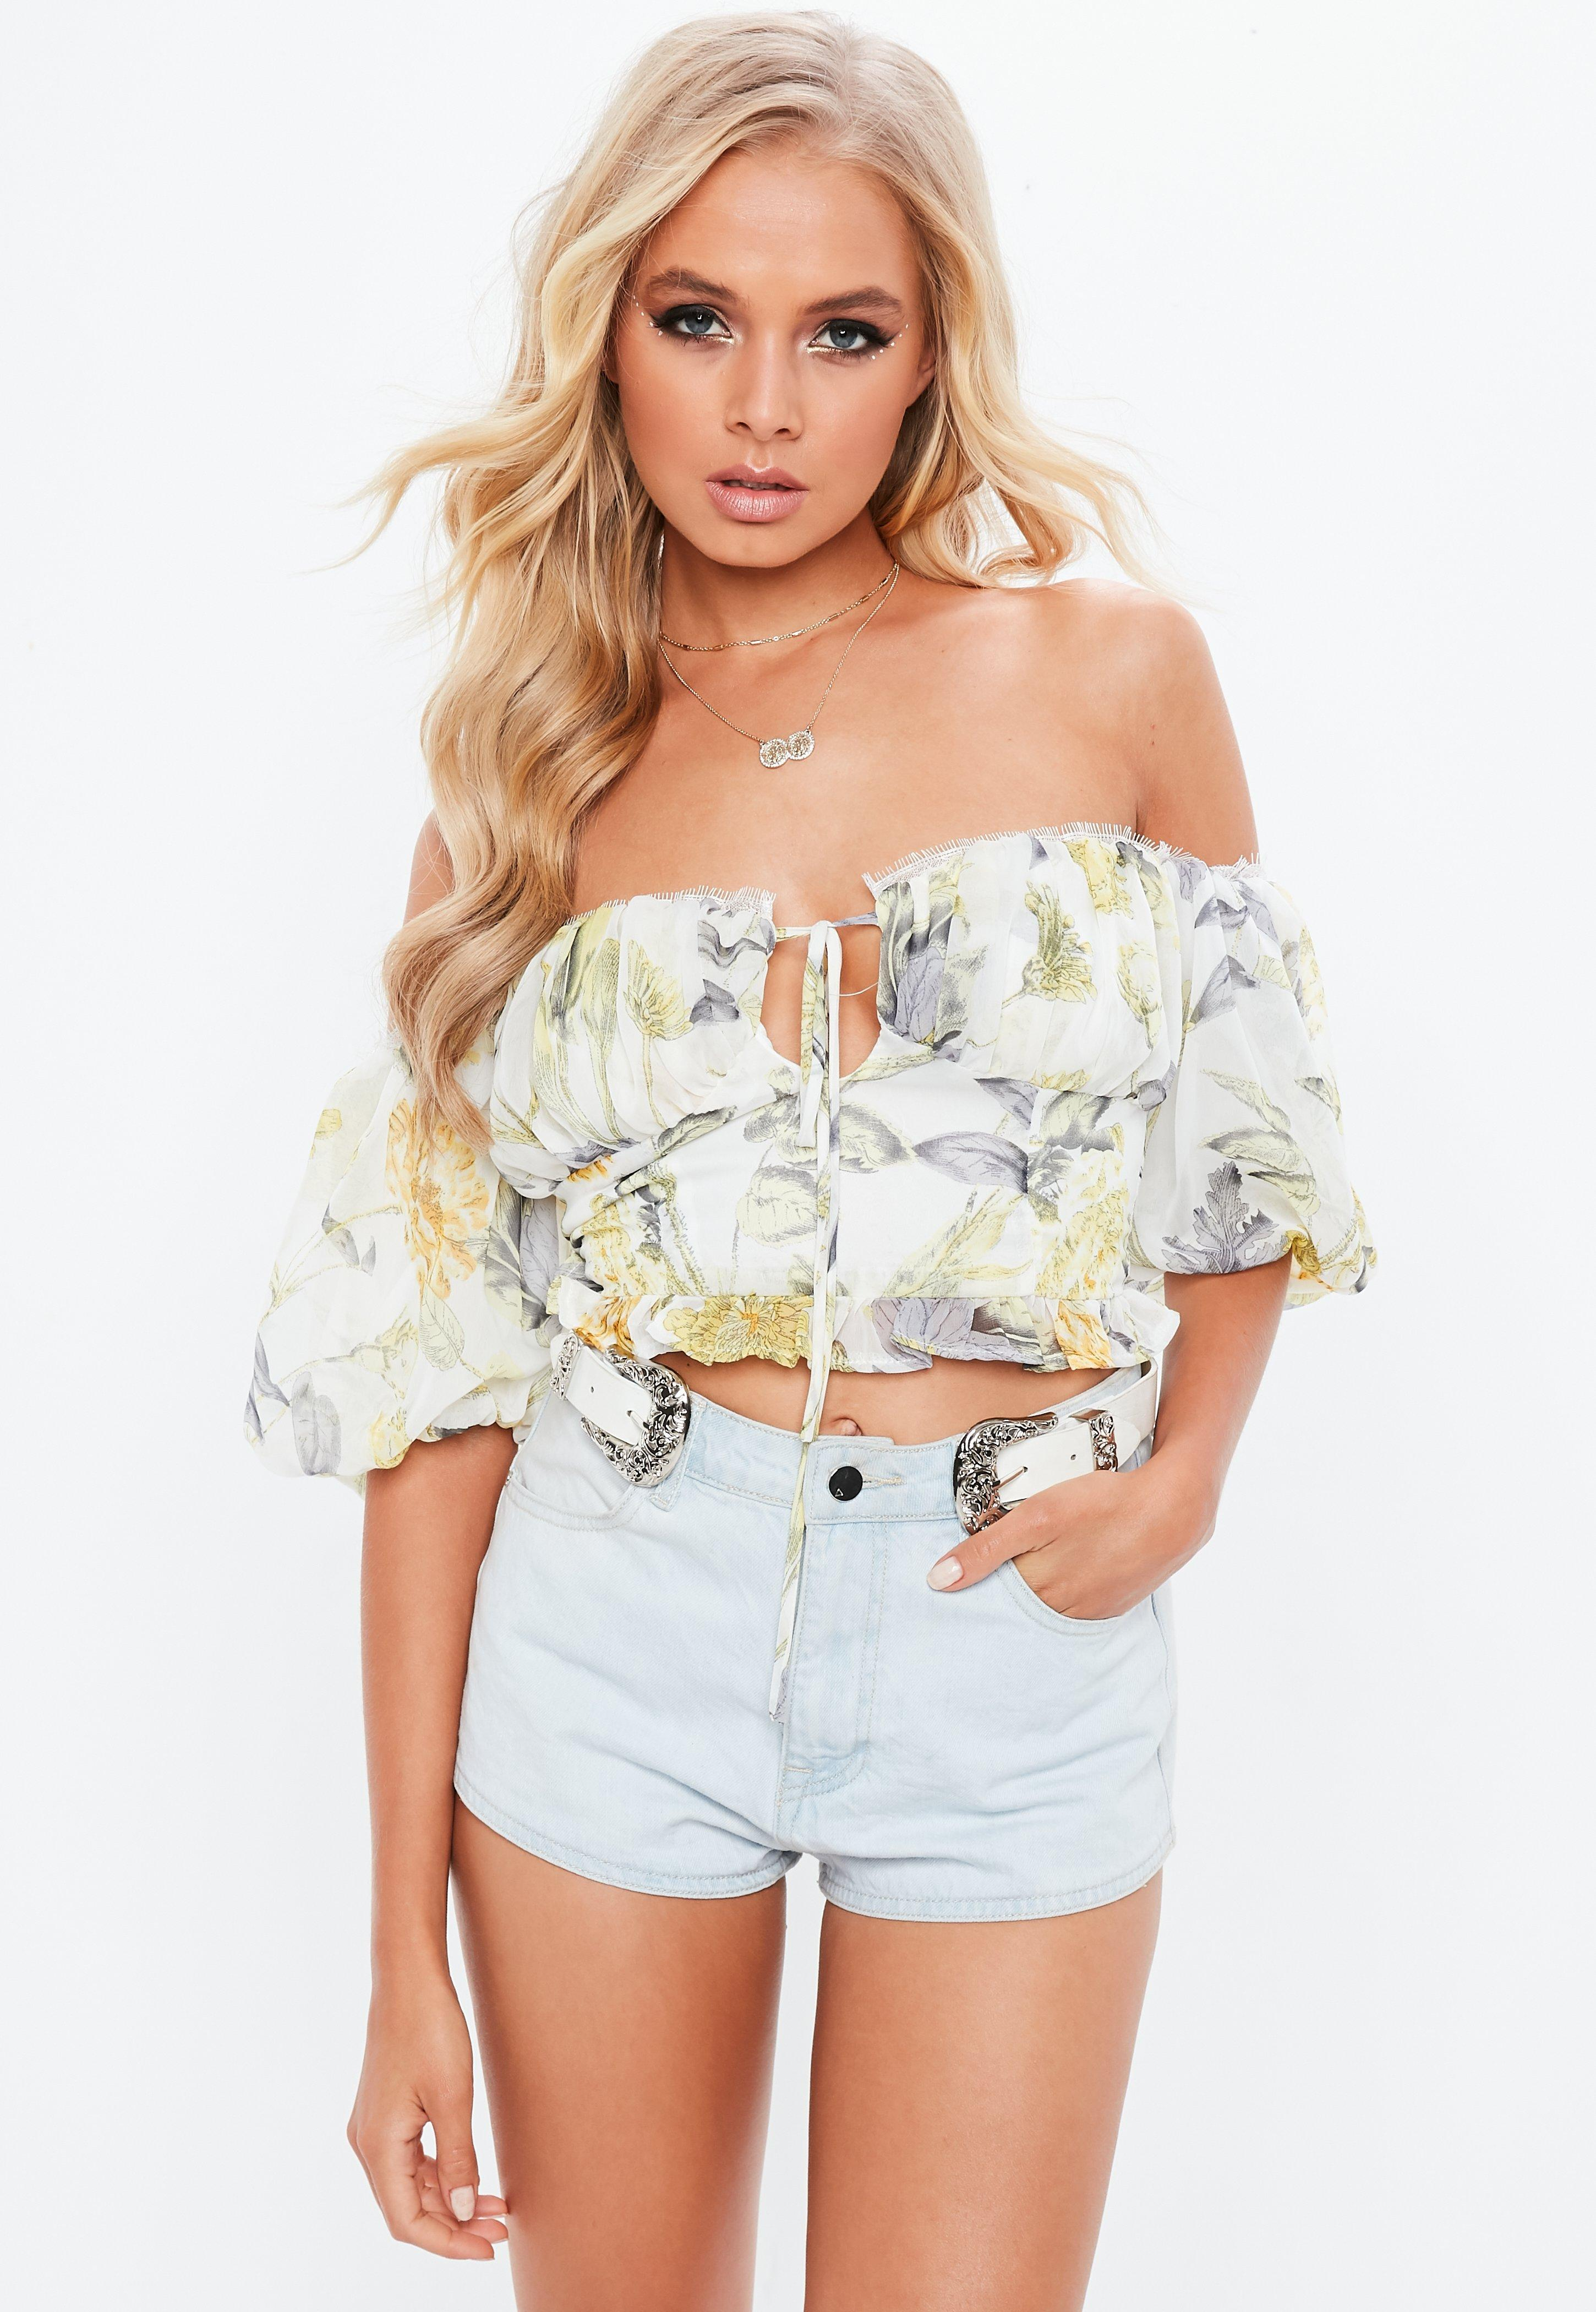 60d7d0020240bd Lyst - Missguided White Floral Milkmaid Bardot Top in White